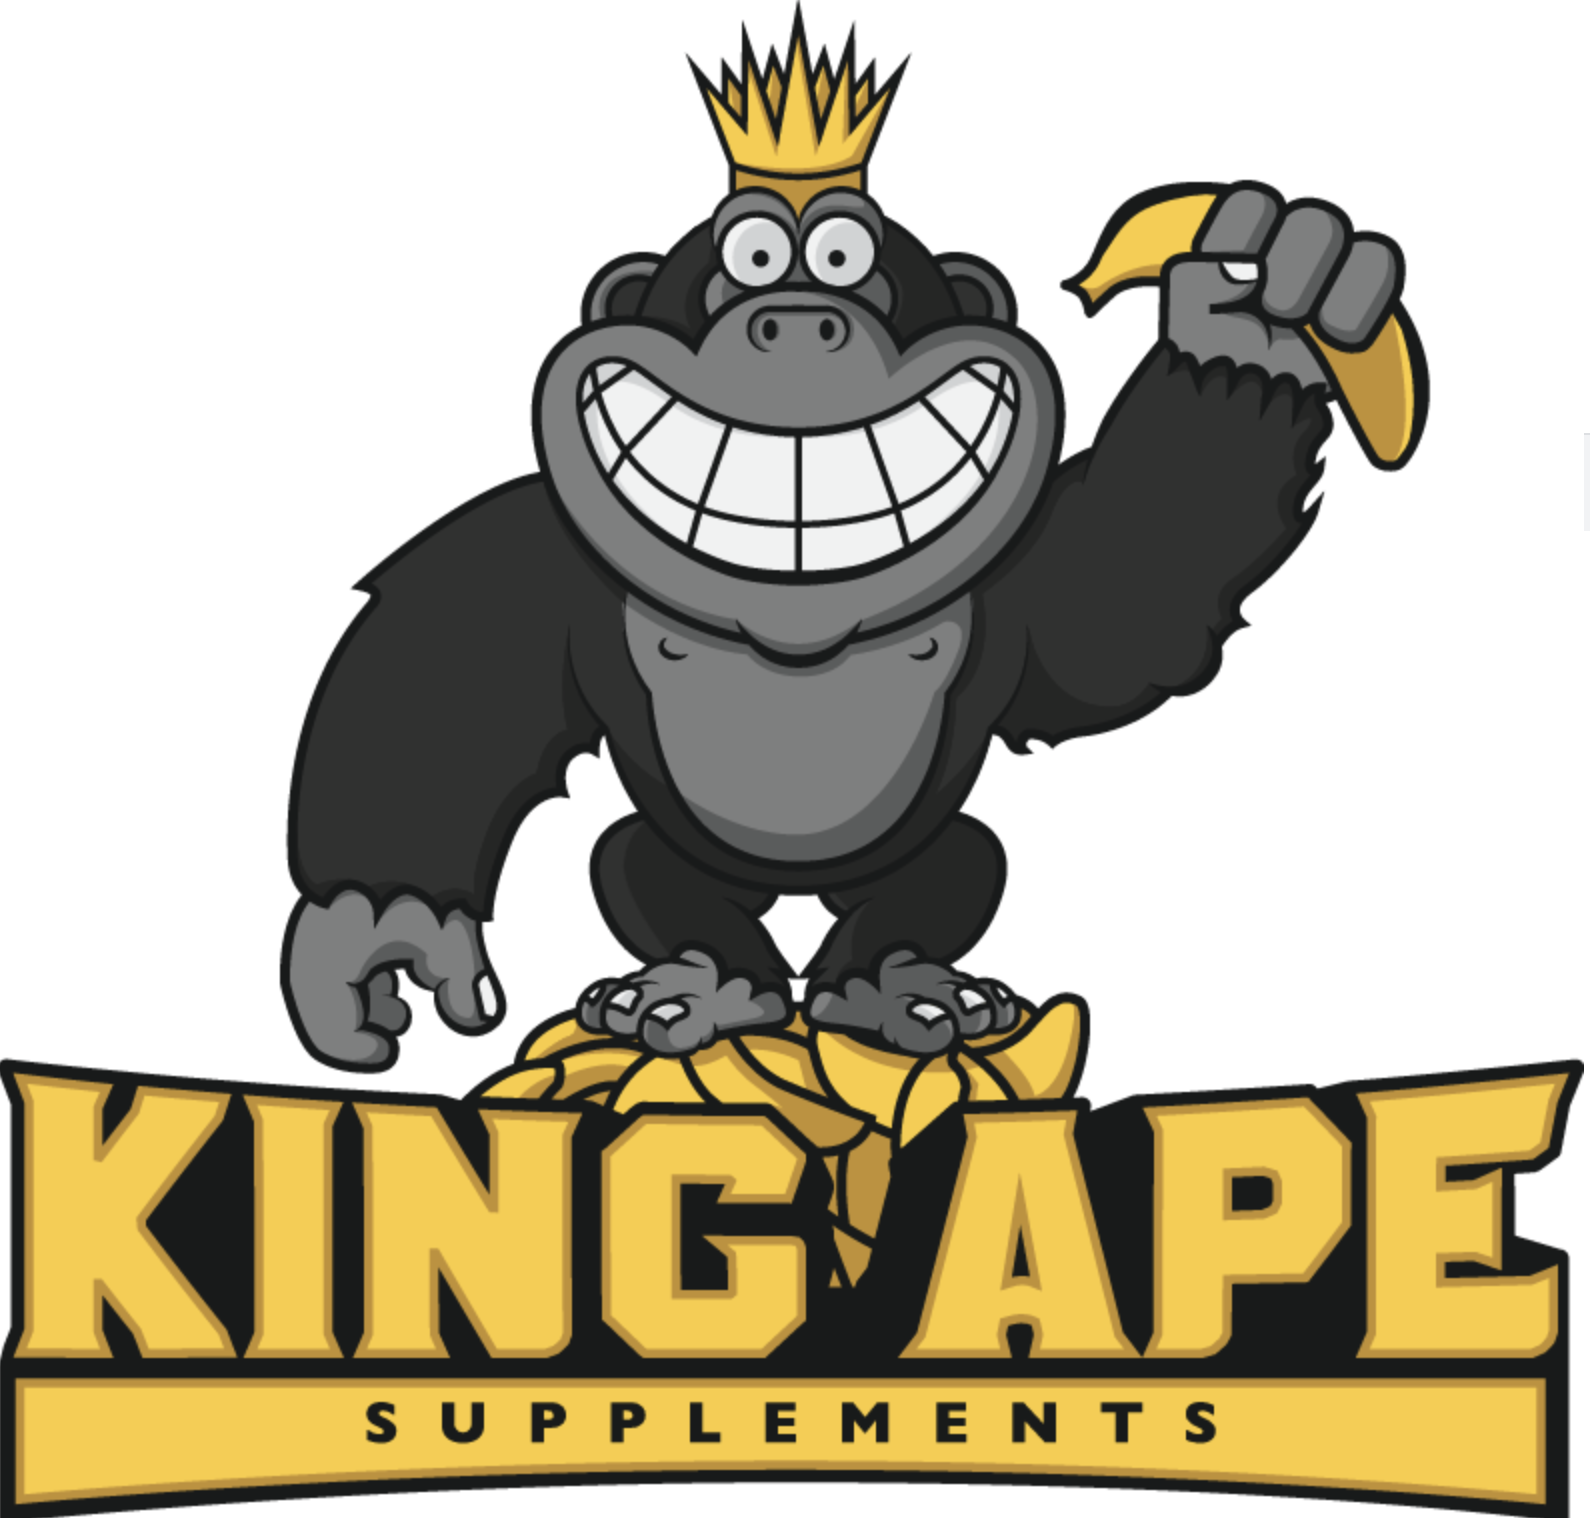 King Ape Supplements